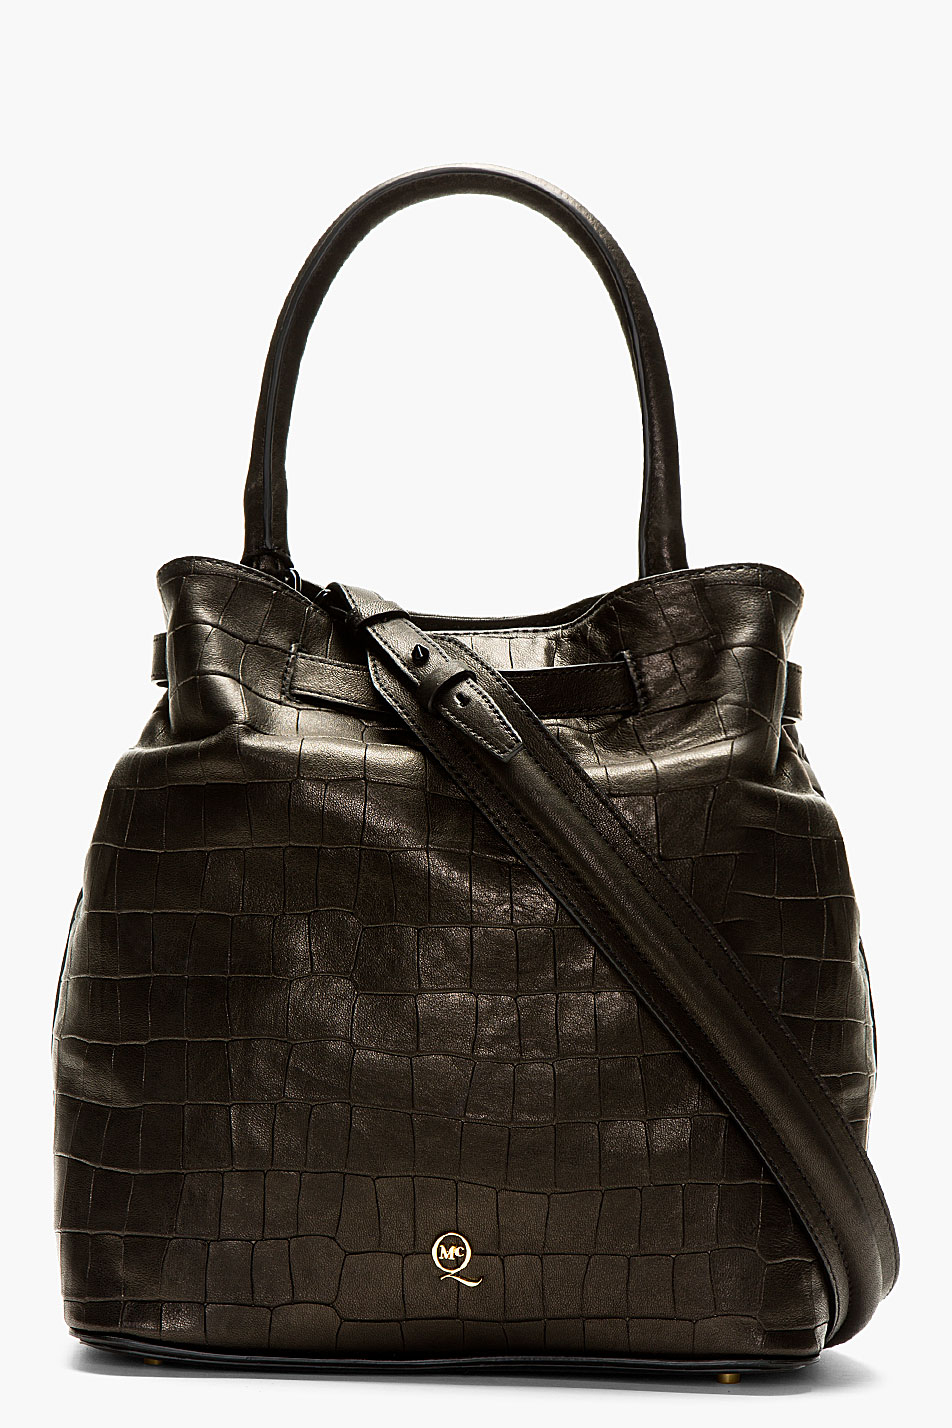 Mcq Black Leather Croc Embossed Shoulder Bag In Black Lyst